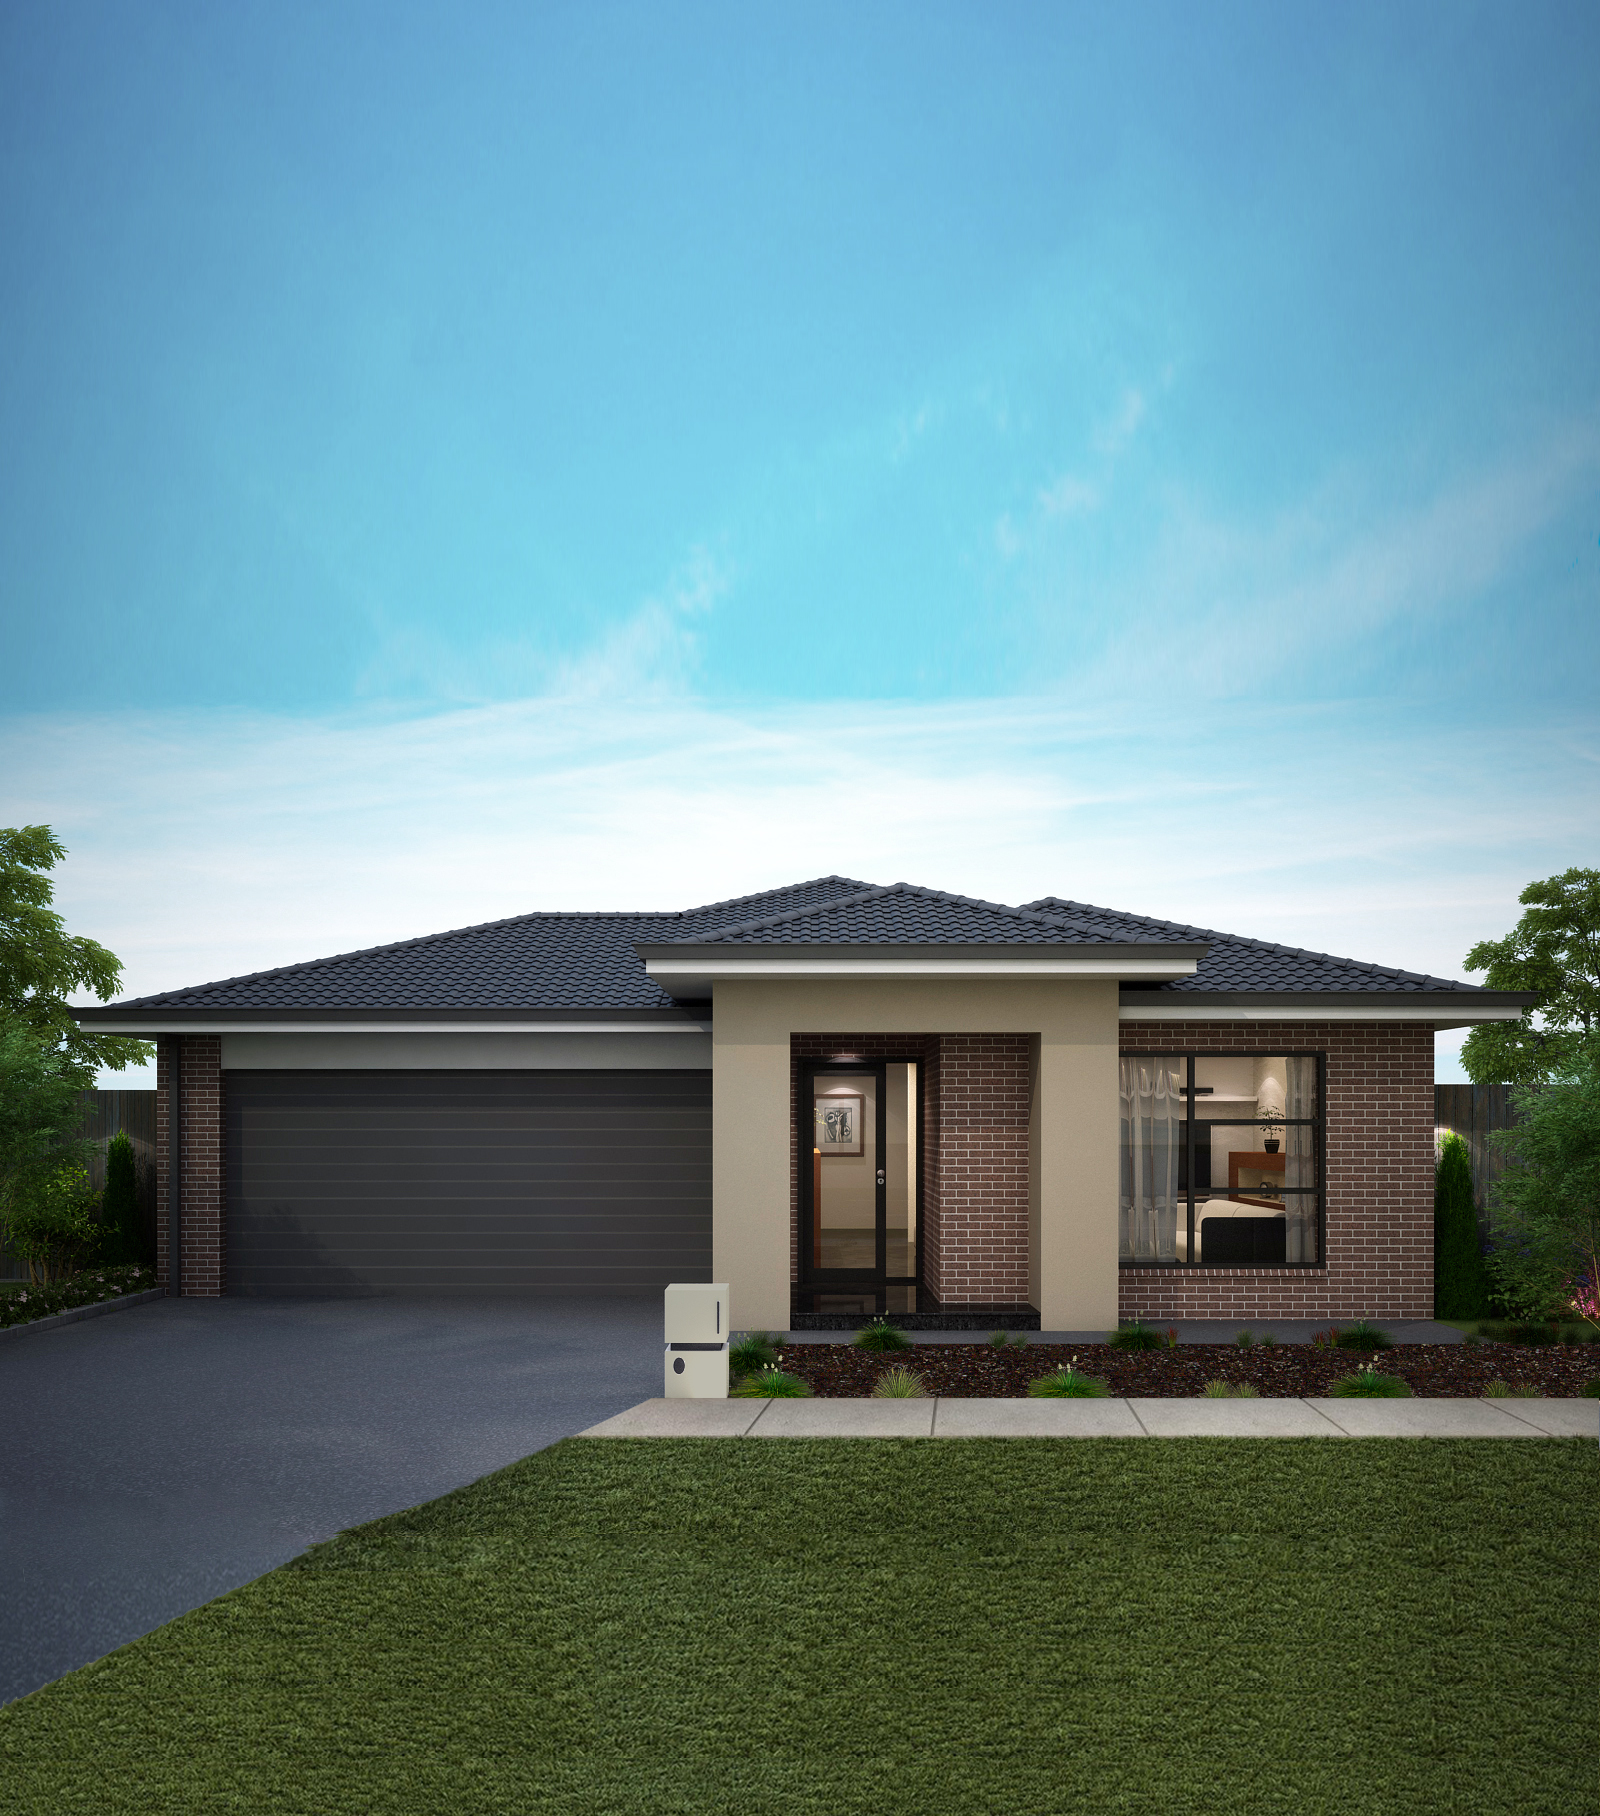 Lot 2914 Yearling Promenade, Werribee